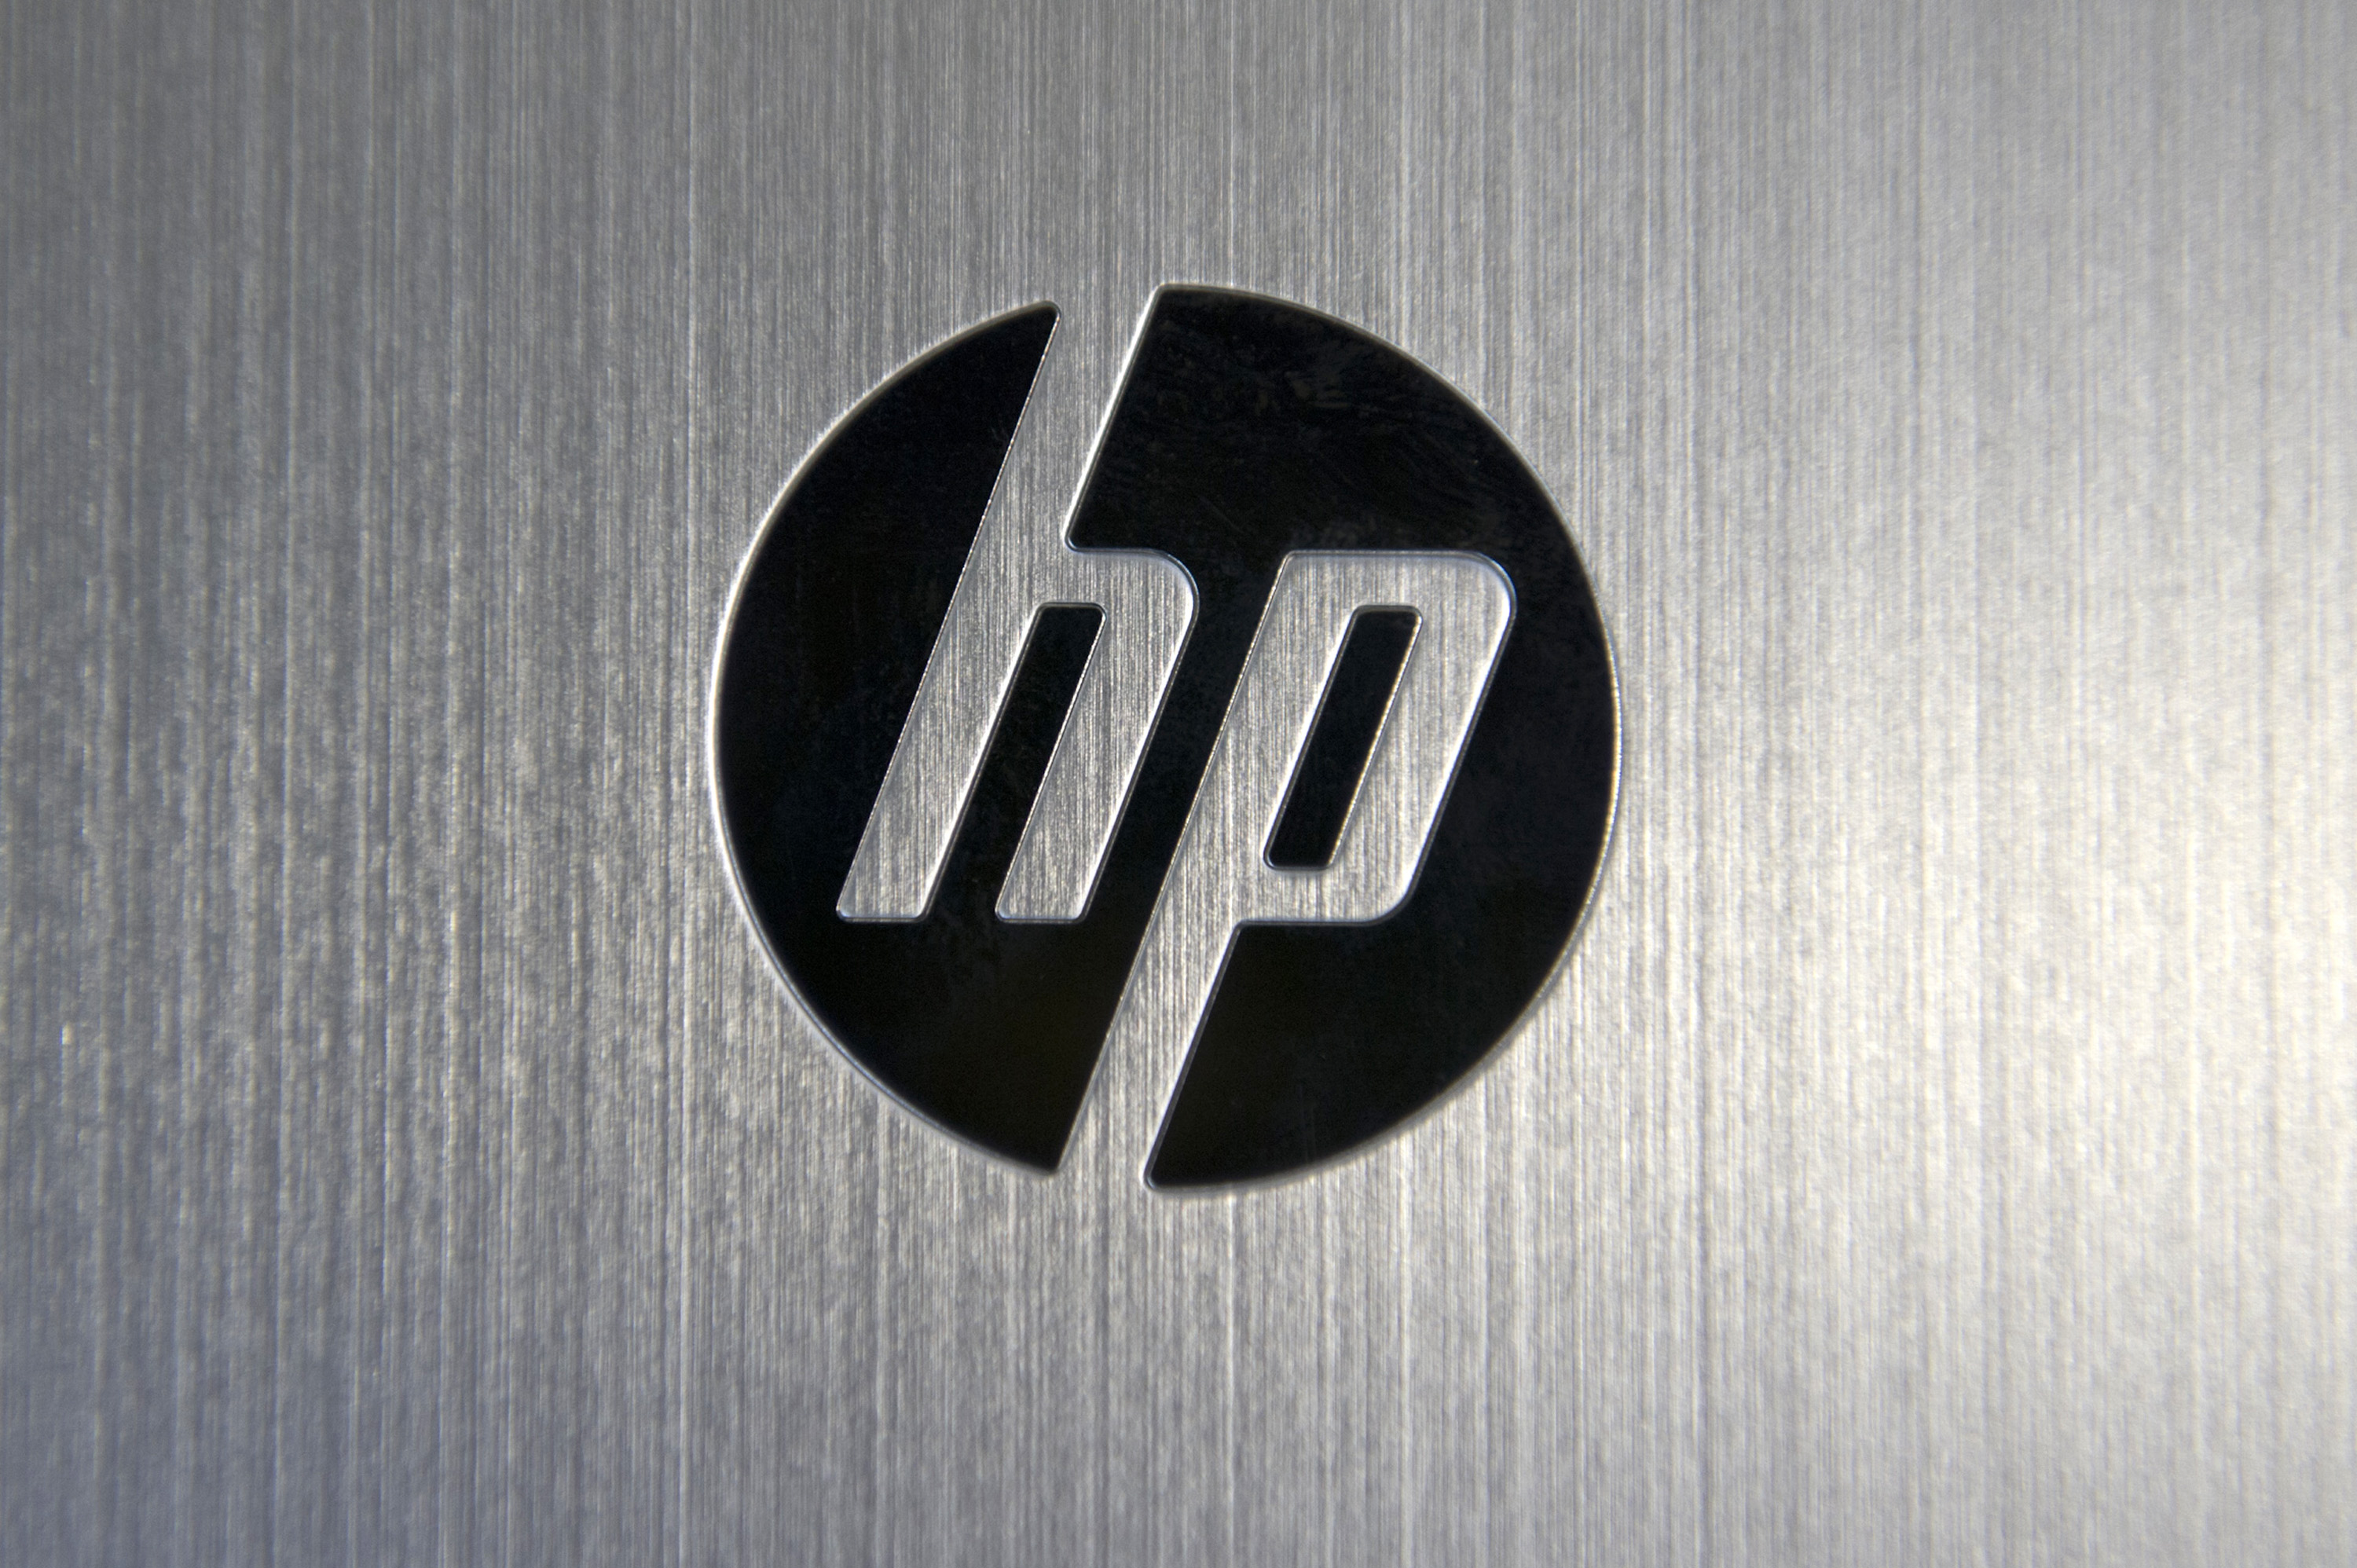 The Hewlett-Packard Co. logo is displayed on the back of the Envy x2 displayed for a photograph in San Francisco, California, on, March 13, 2013.